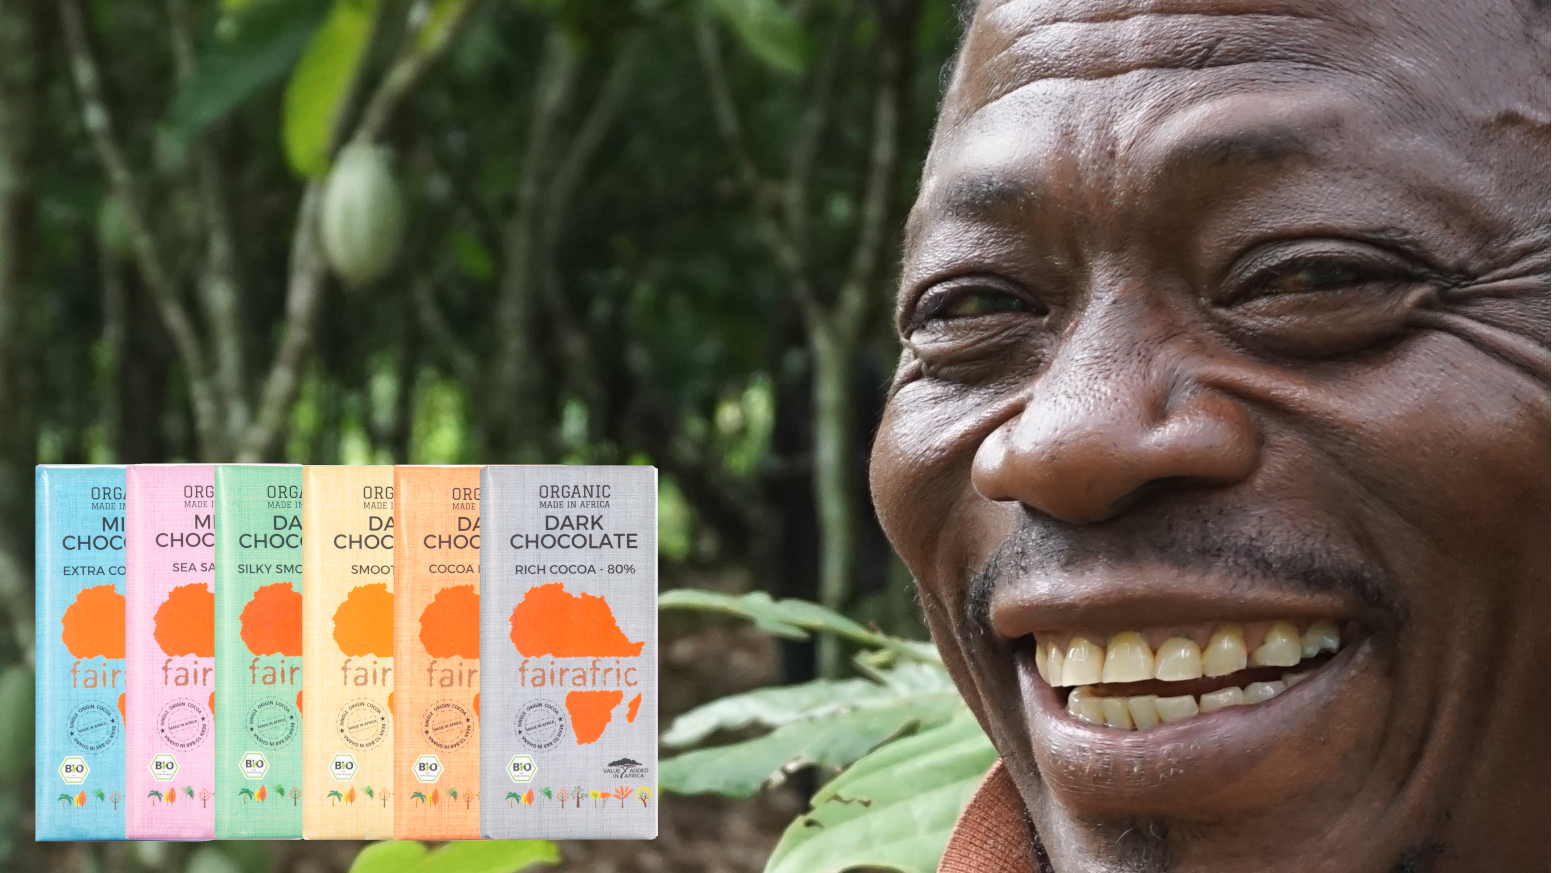 fairafric wants to give company shares to cocoa farmers and massively improve its environmental footprint